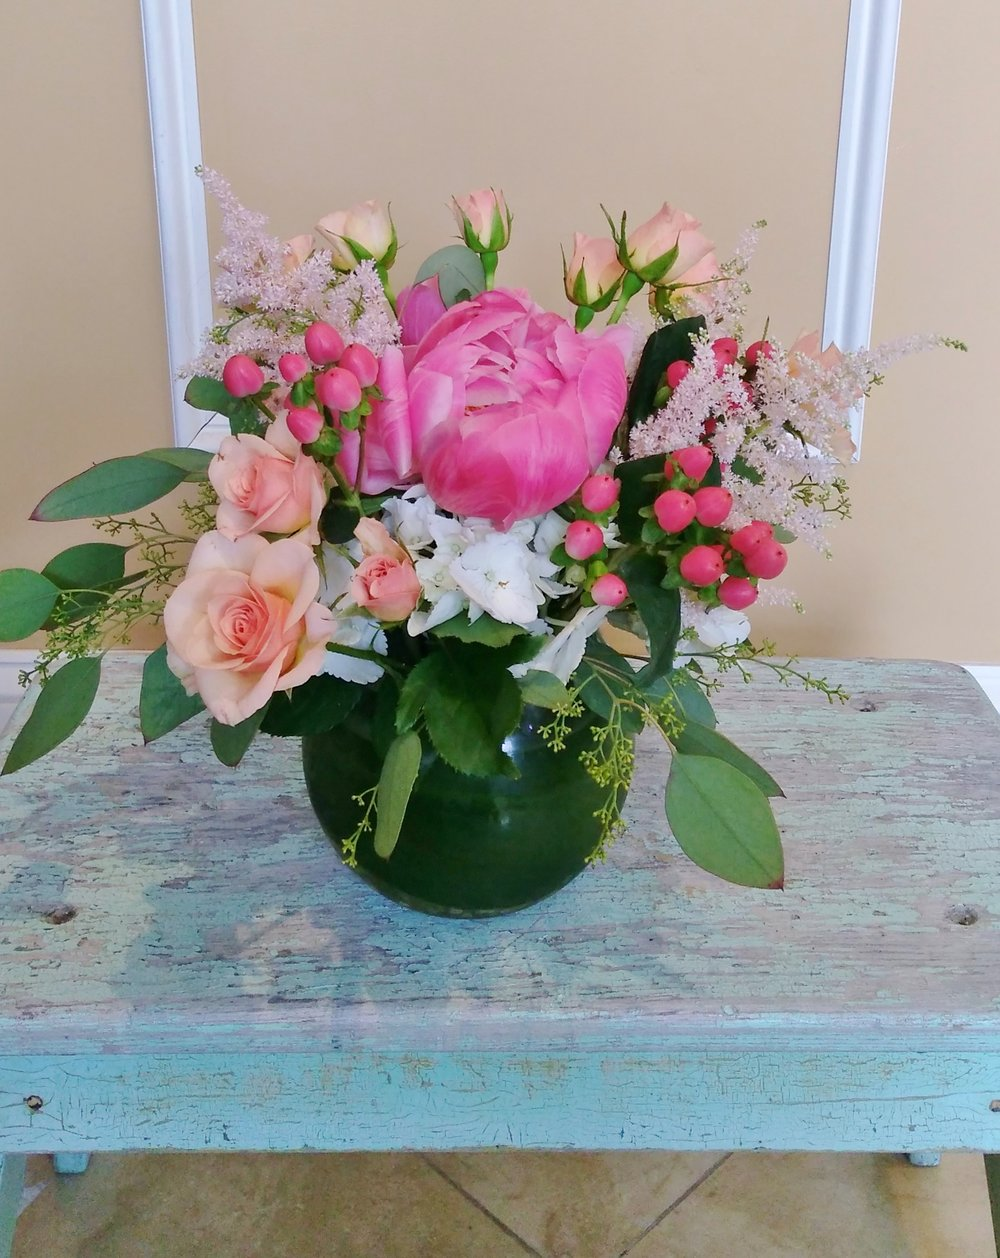 A1 $60 - $85 Cluster-style arrangment. $60 as shown.